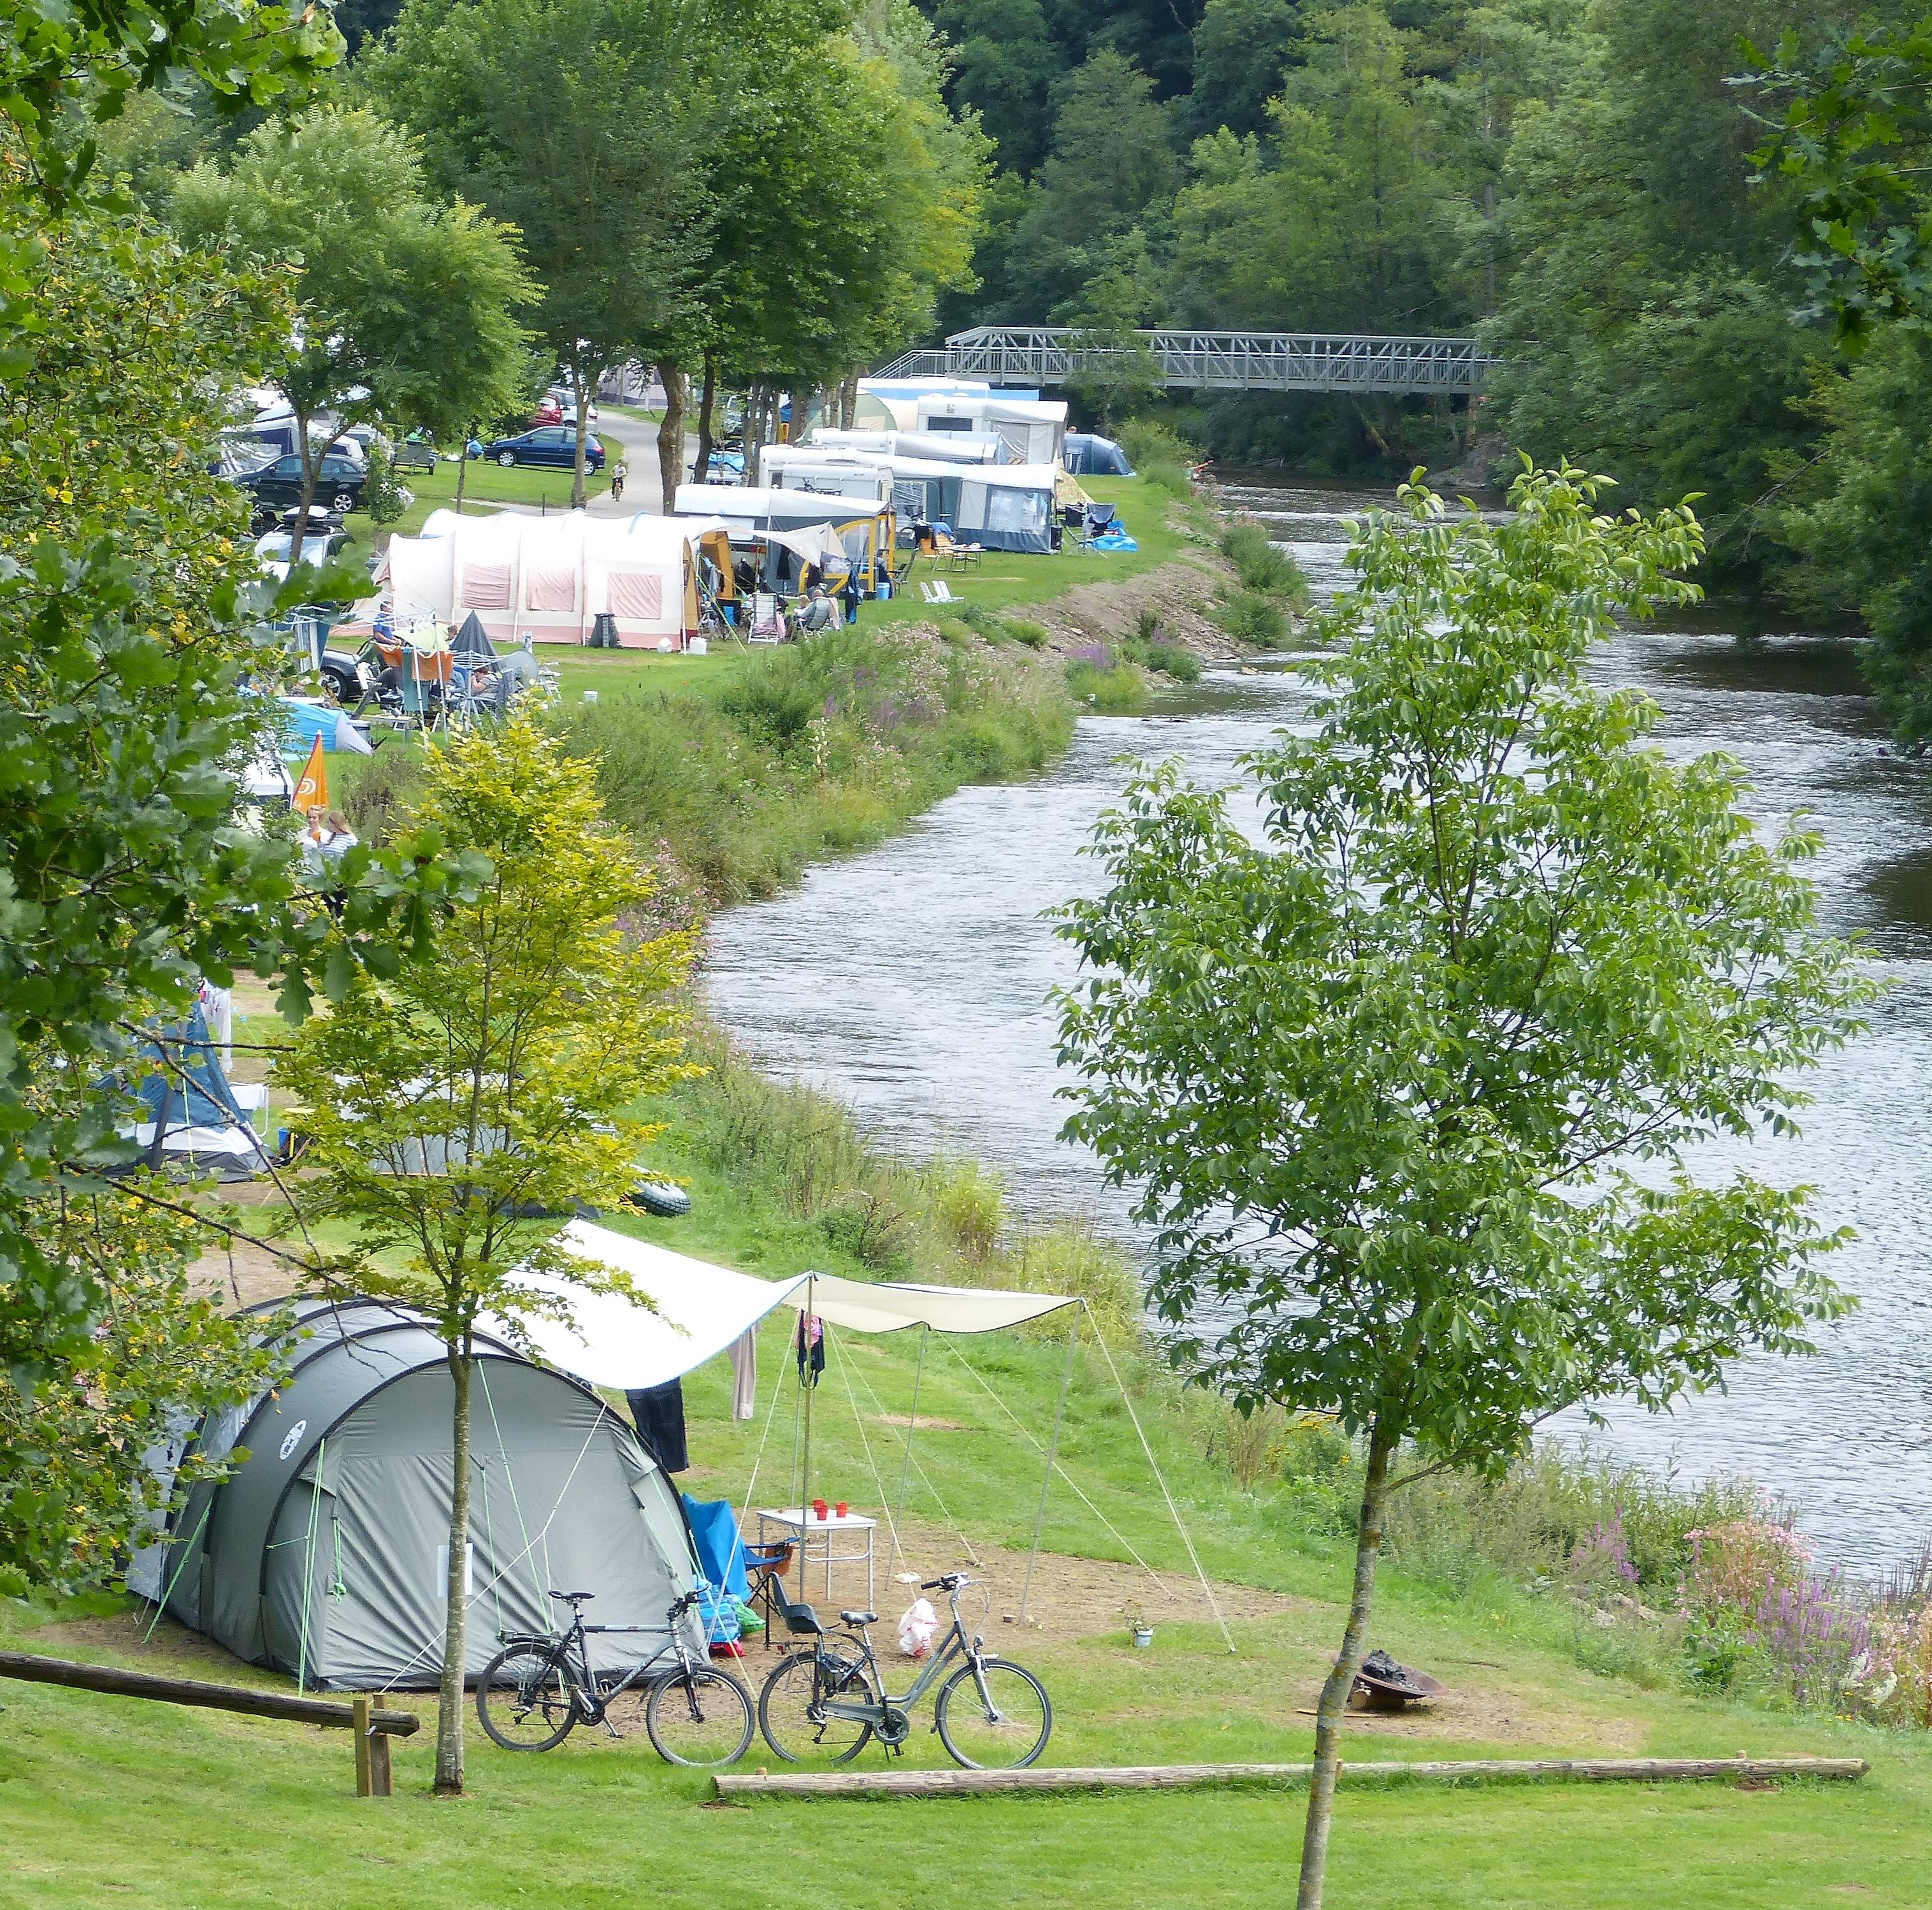 Establishment Camping Kohnenhof S.a.r.l. - Eisenbach